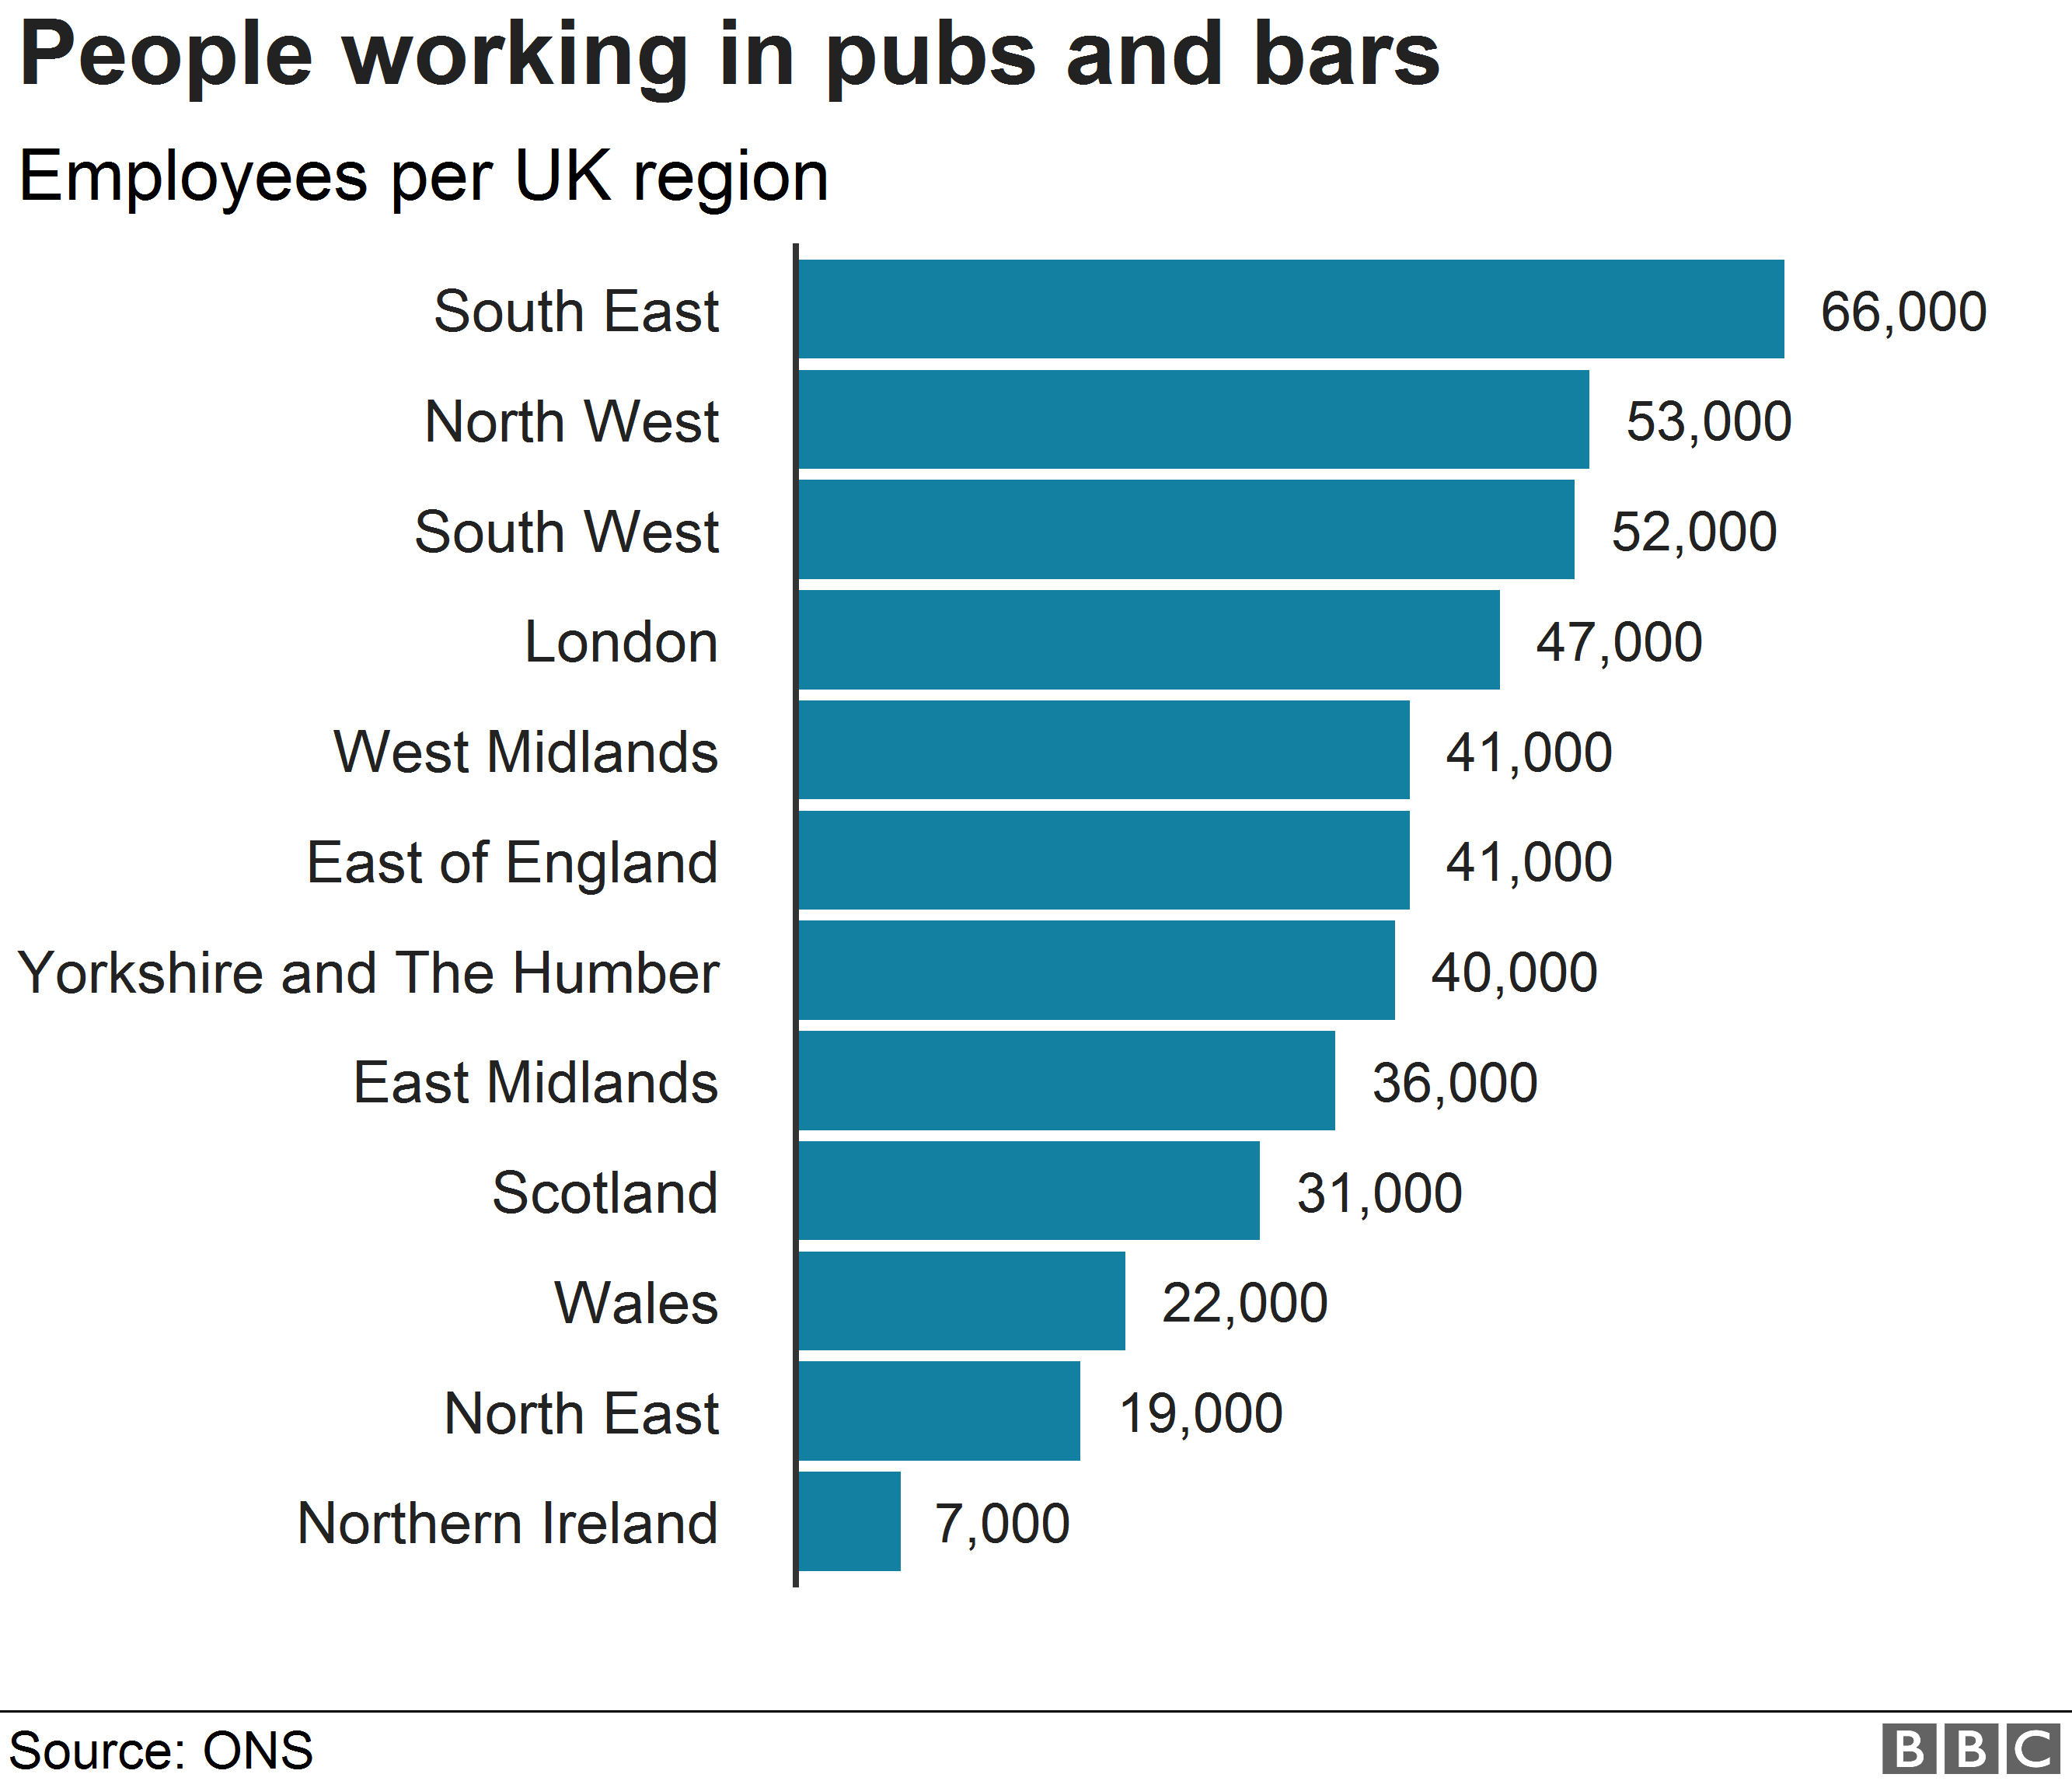 employment figures for pubs and bars